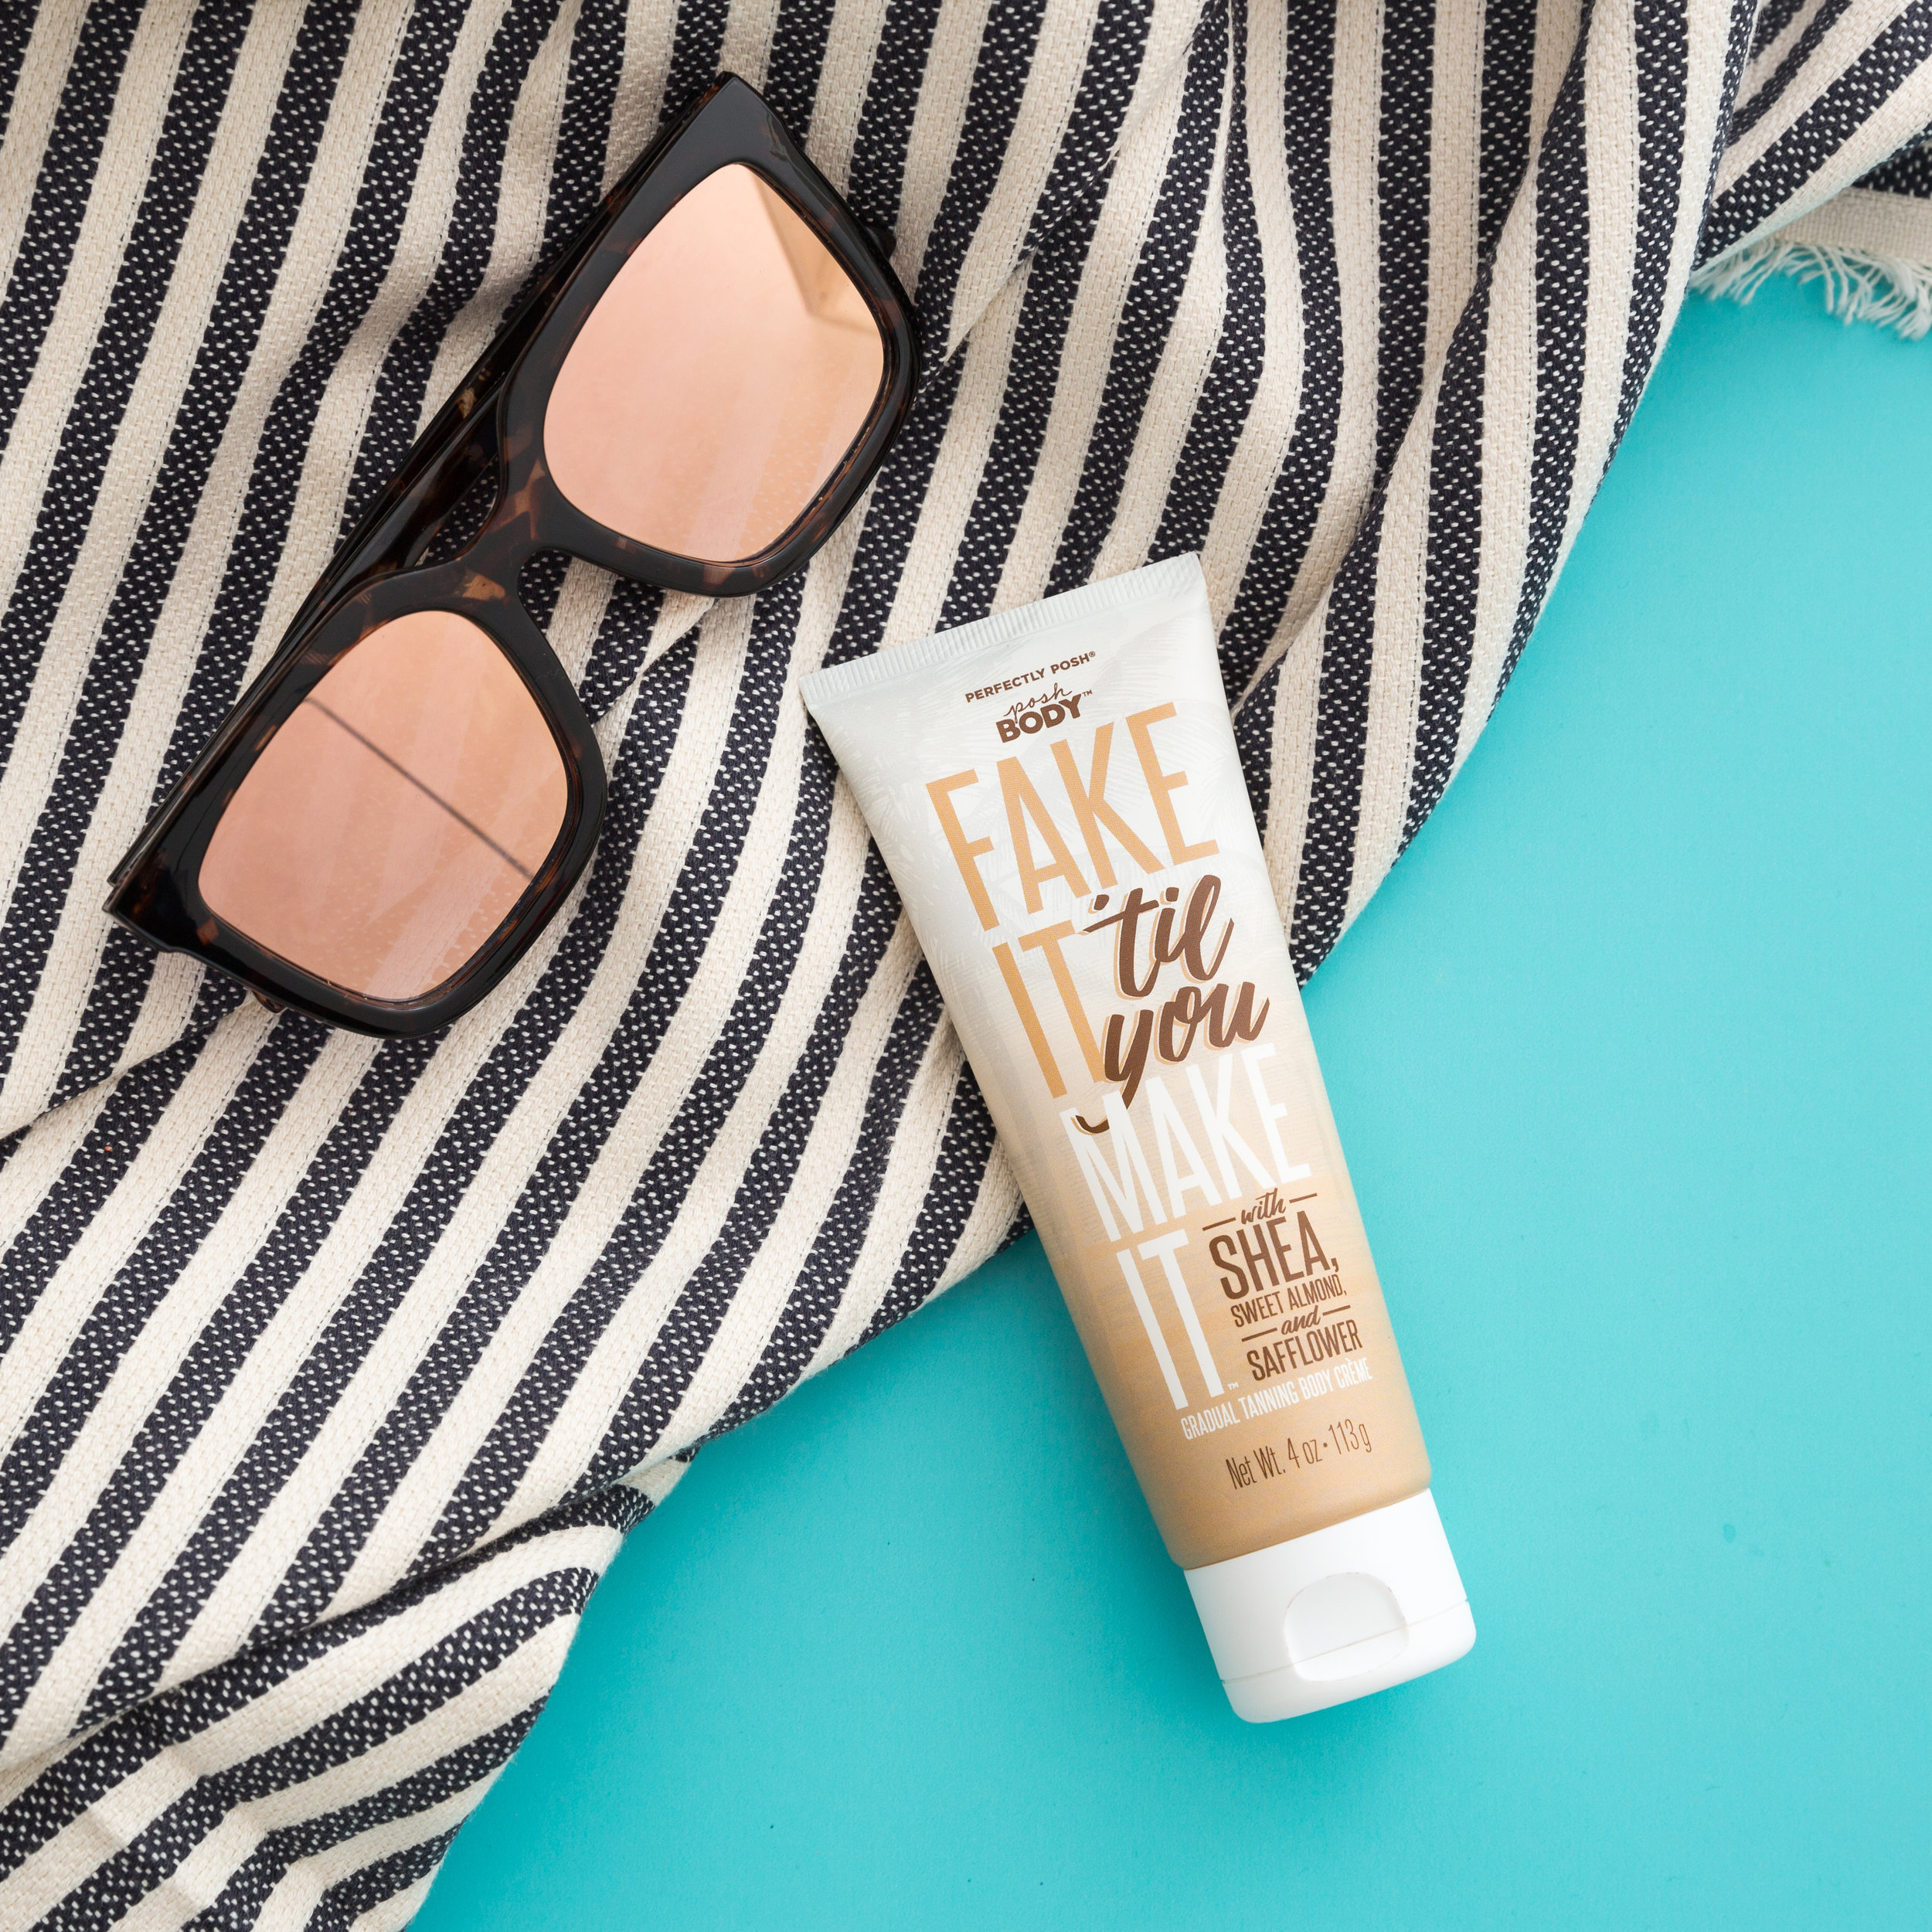 Perfectly Posh Fake It 'Til You Make Gradual Tanning Body Creme, the best self tanner for moisturized skin, how to apply self tanner for a streak-free glow